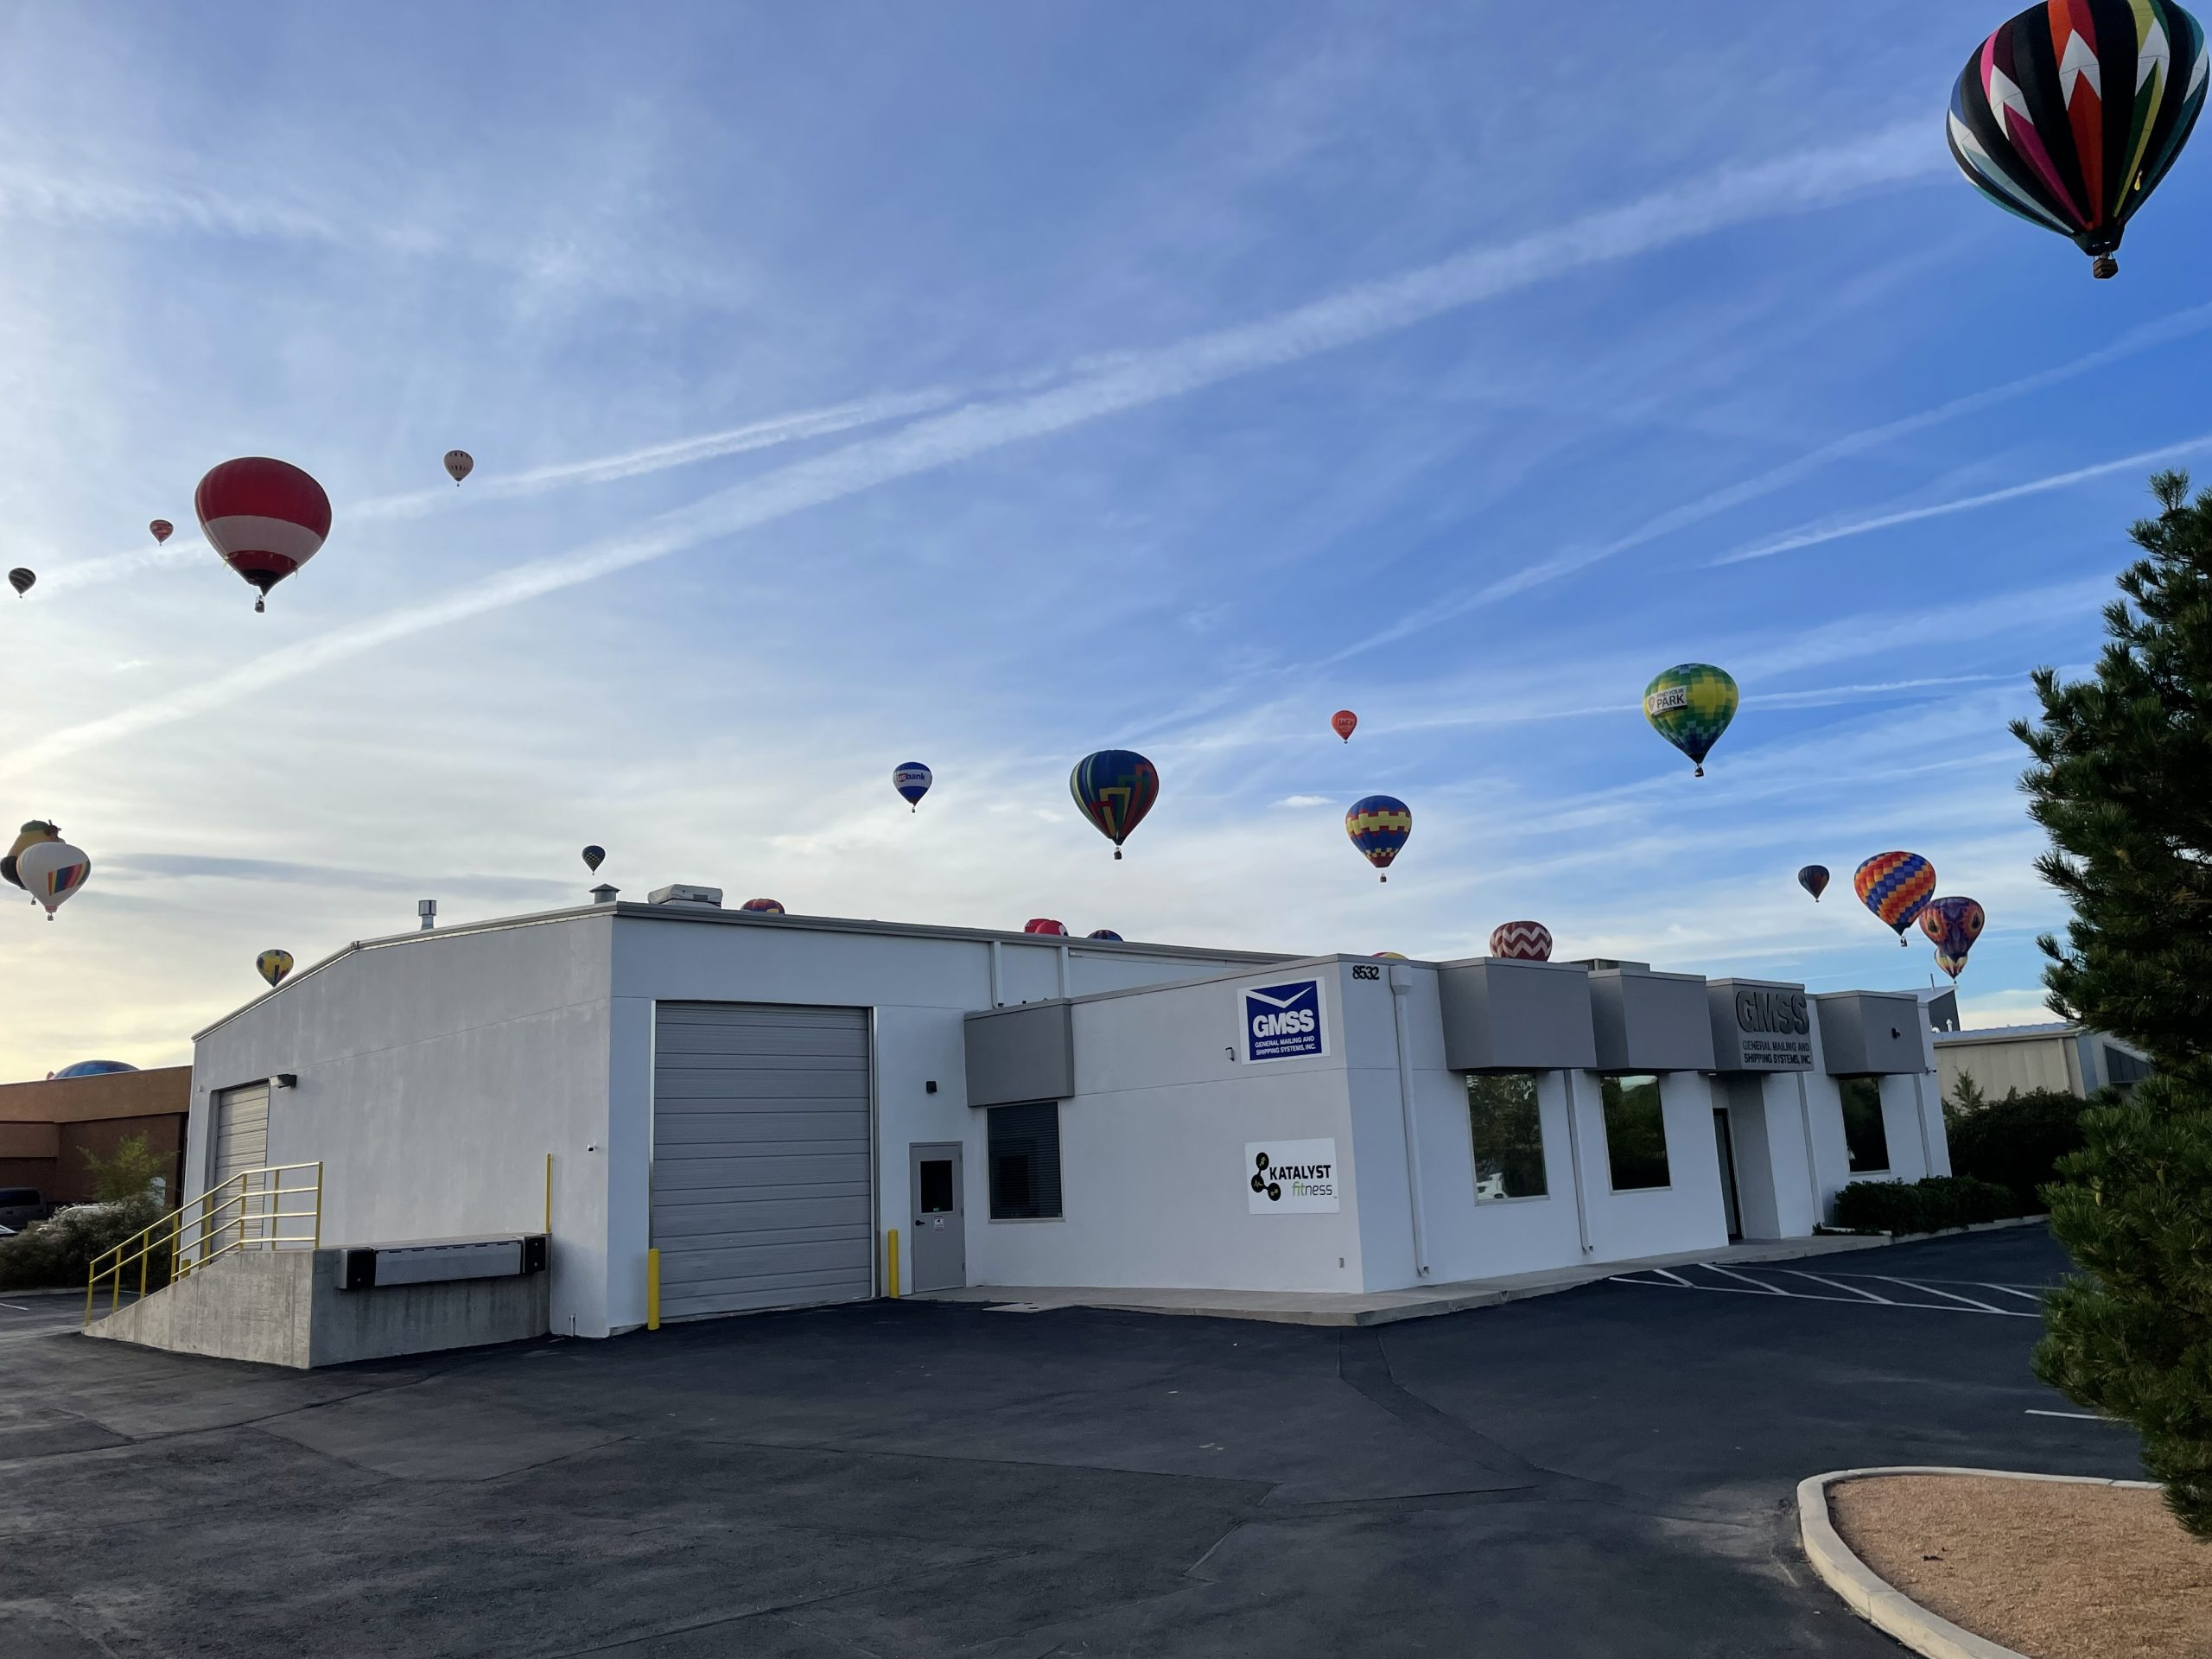 Hot air balloon next to General Mailing and Shipping Systems Inc. building